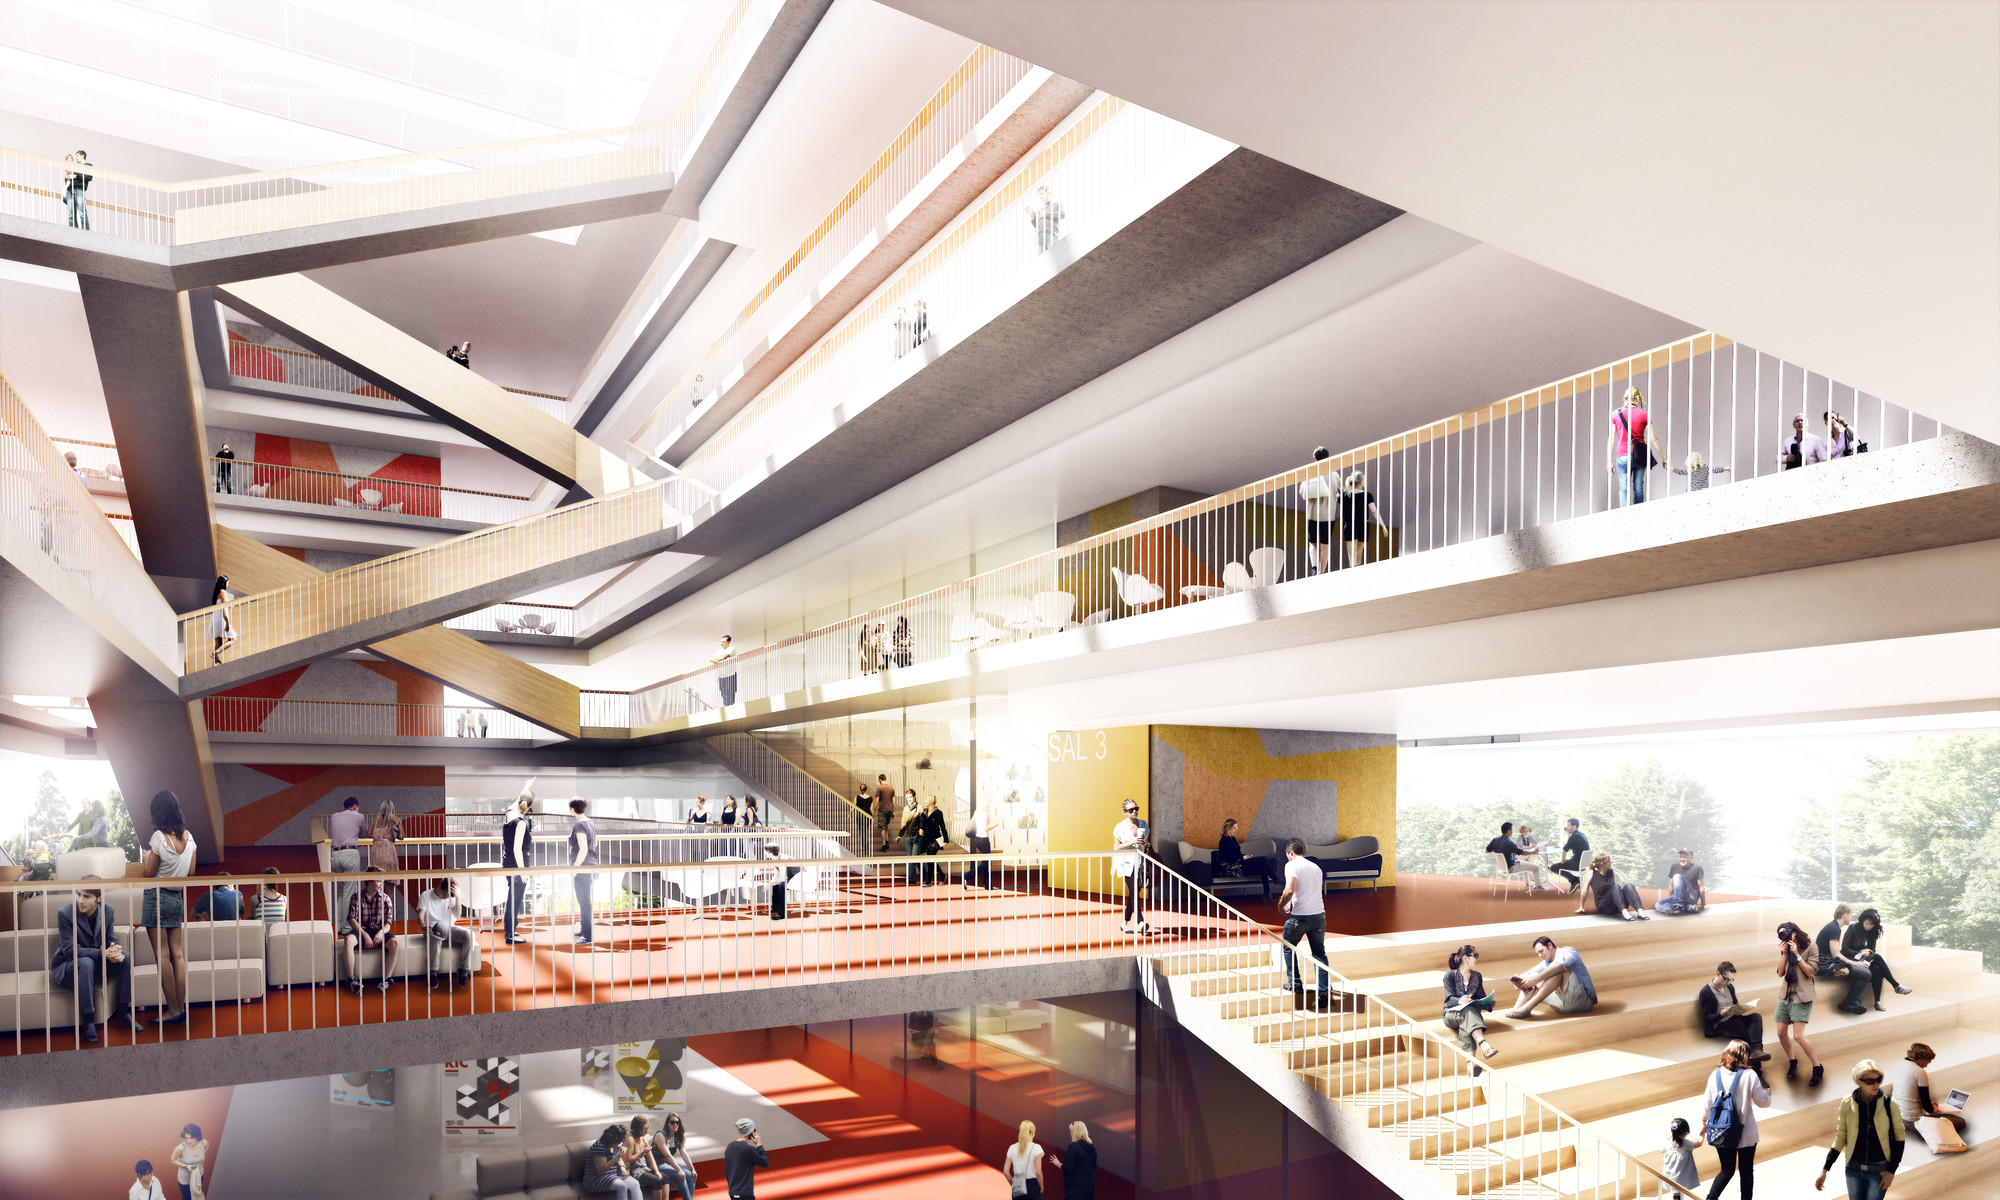 3XN Chosen Over Windgardh Arkitema To Design University Building